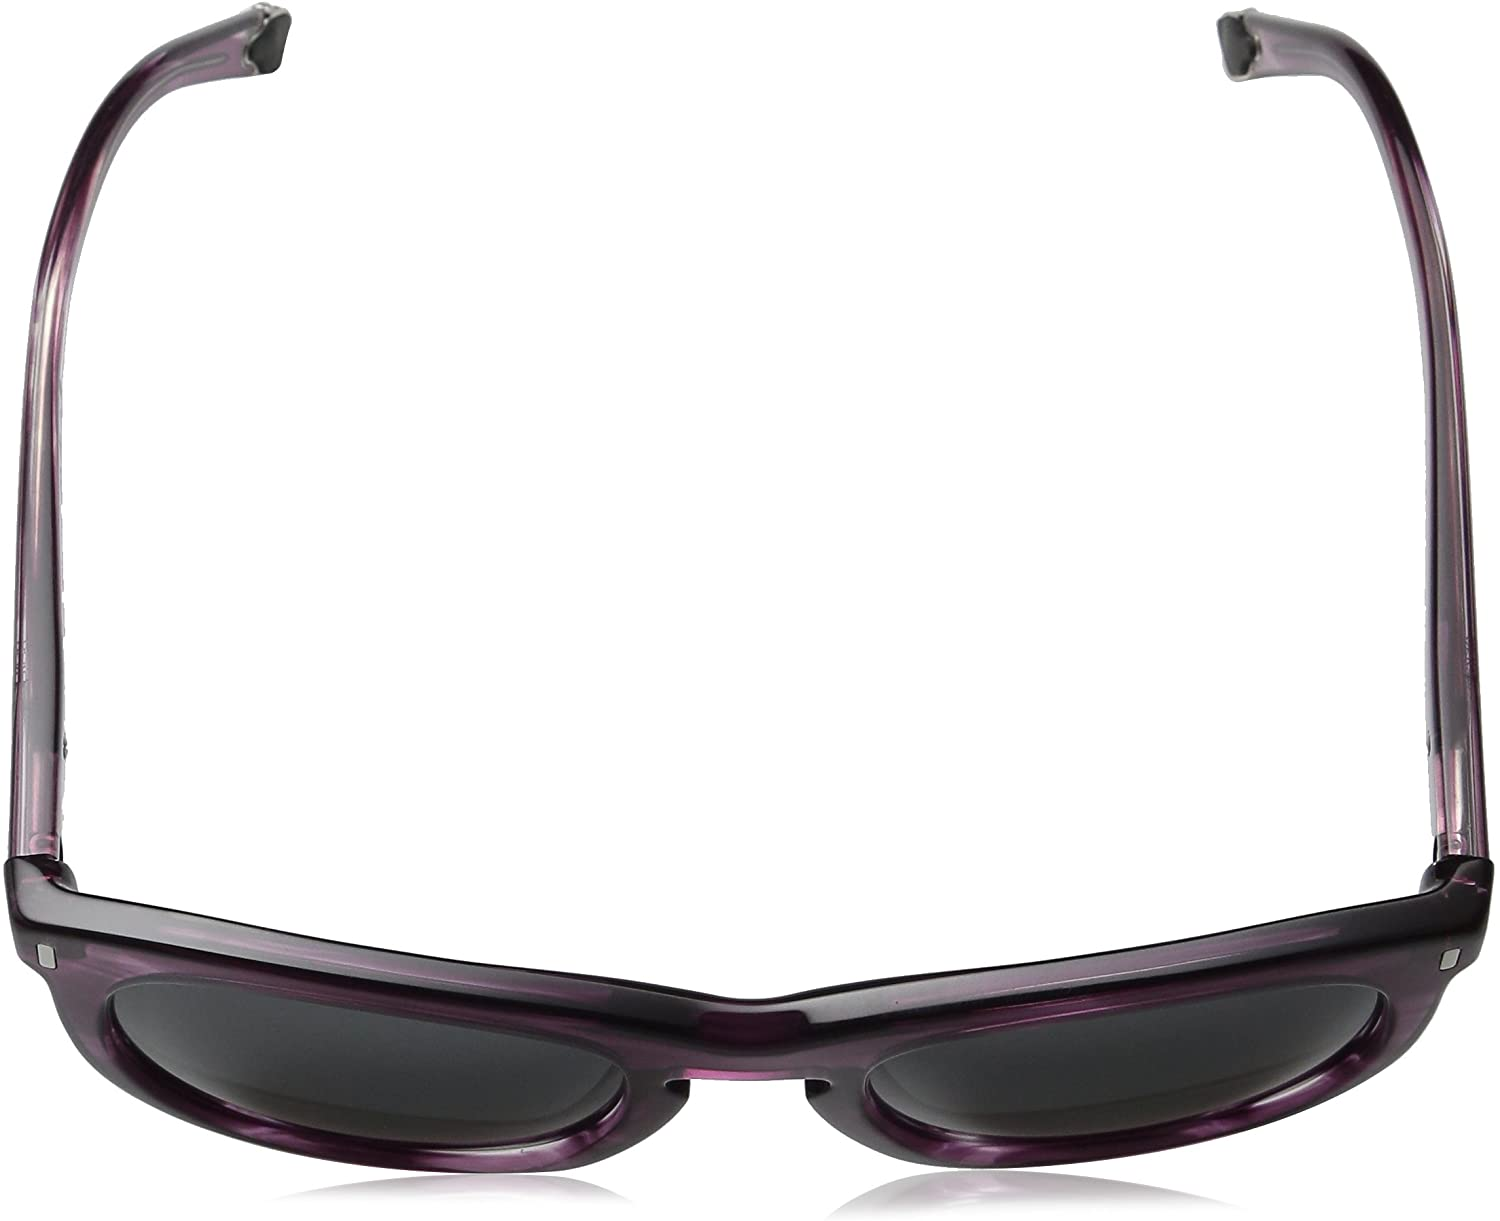 Dolce & Gabbana Sunglasses DG4281 3030/87 (Condition: Minor scratch on lens)